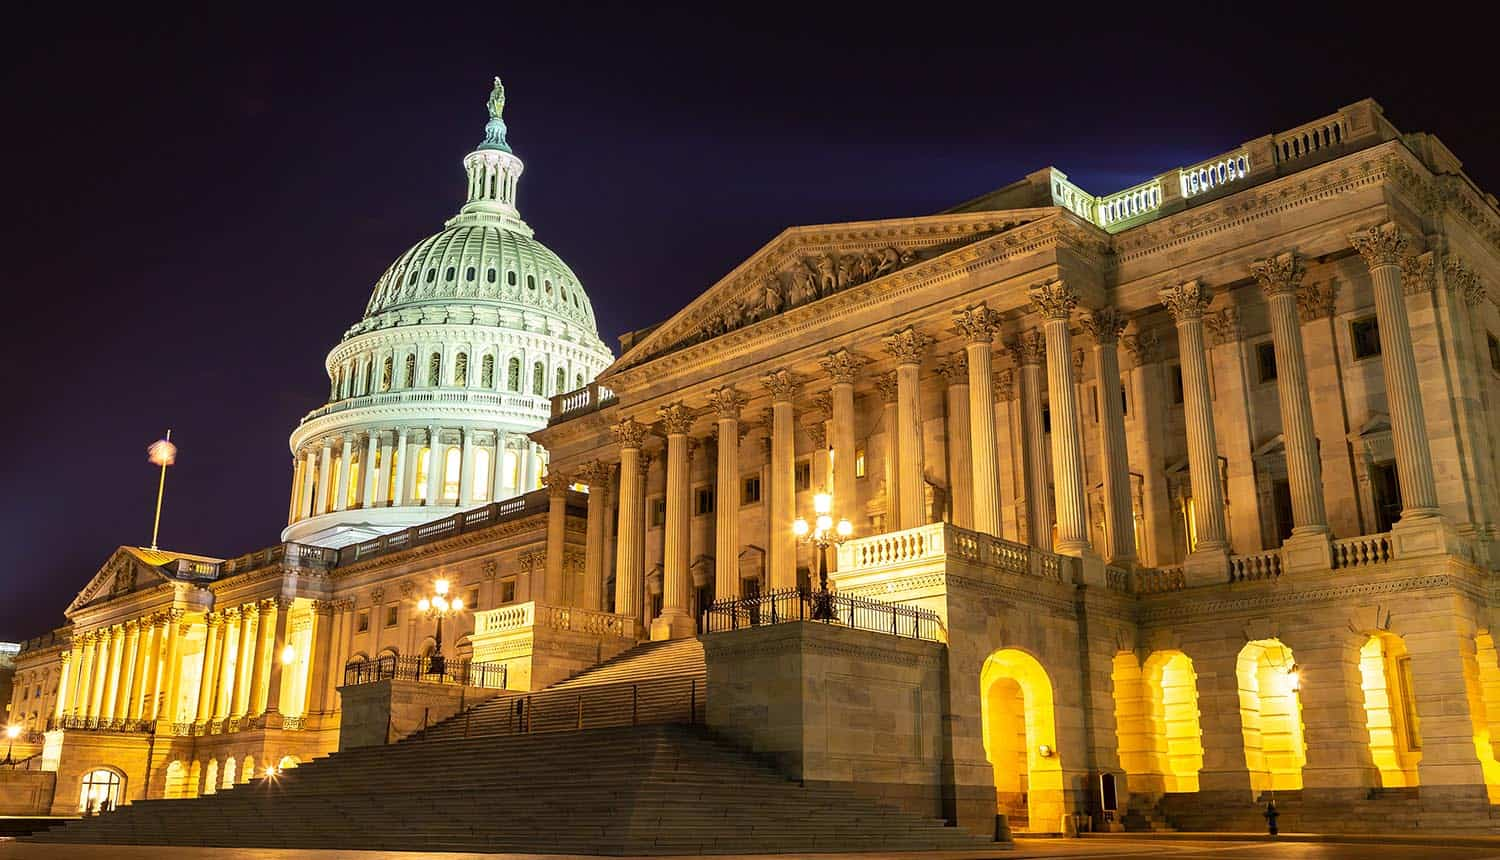 U.S. Capitol building at night showing cyber incident reporting bill for ransomware payments